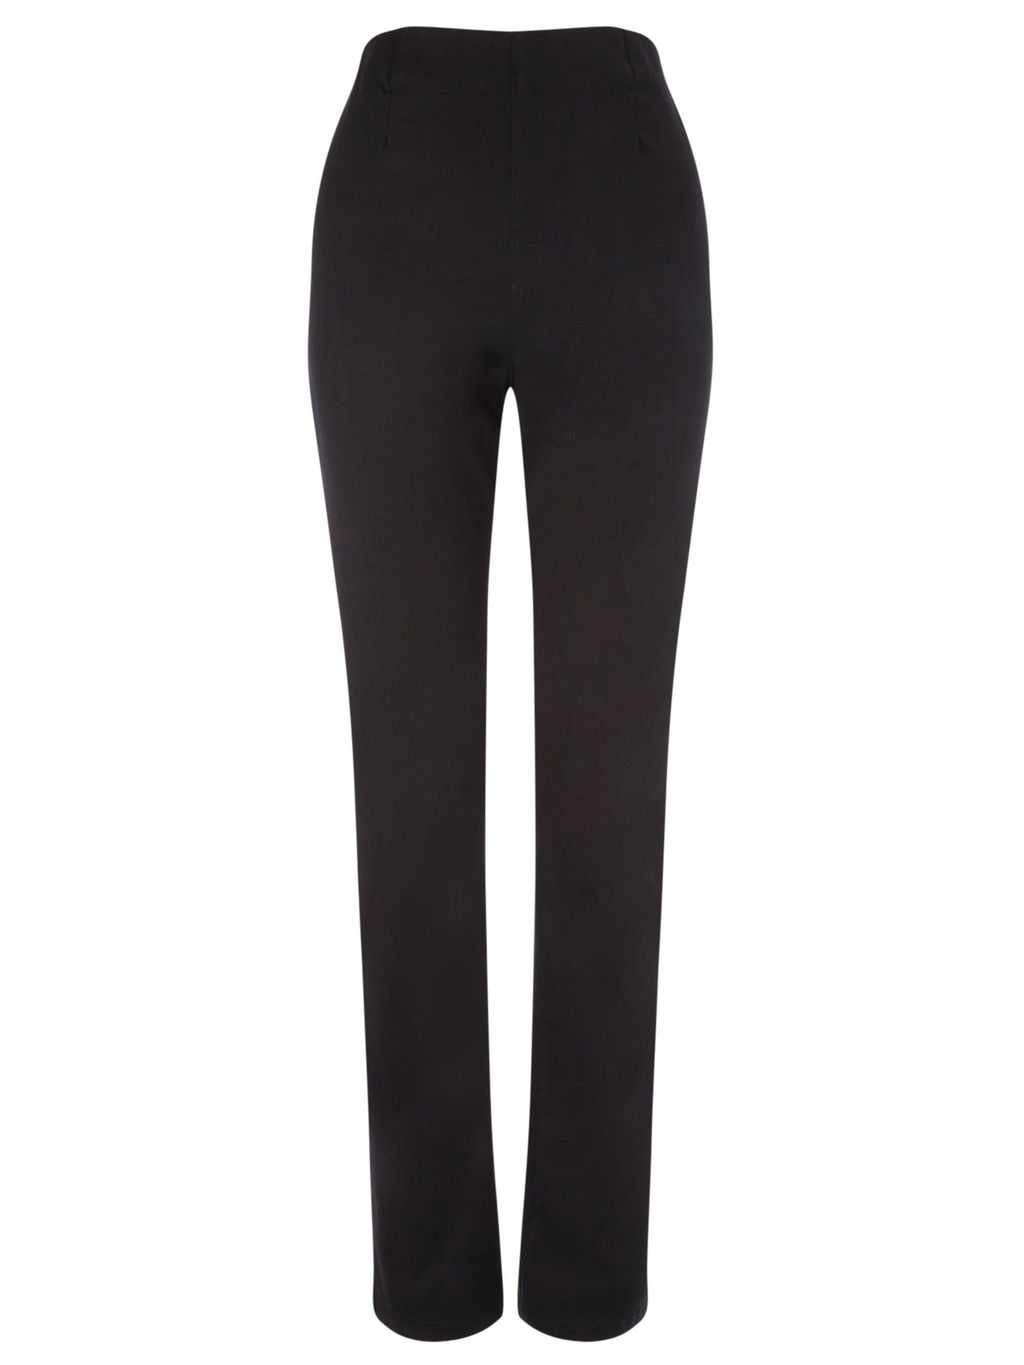 Black Jegging Long - style: straight leg; length: standard; pattern: plain; waist: high rise; predominant colour: black; occasions: casual; fibres: cotton - stretch; texture group: denim; pattern type: fabric; season: s/s 2016; wardrobe: basic